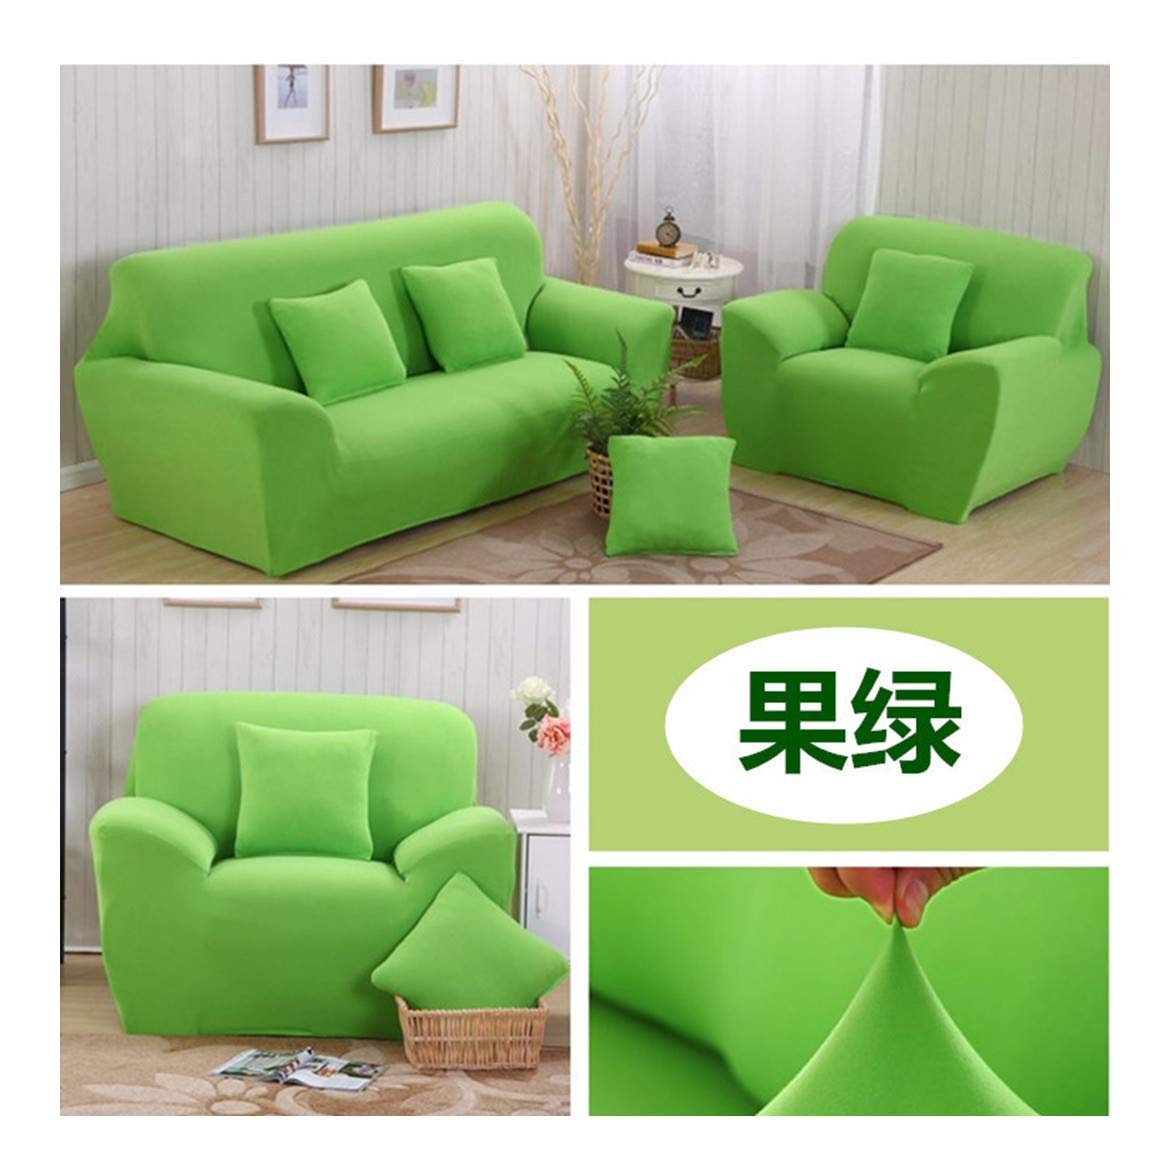 4seat VGUYFUYH Fruit Green Knitted Sofa Cover Polyester Full Package Elasticity Slip-Proof Home Universal Sofa Cover Simple Fashion One Set Durable Dust-Proof Pet Dog Predective Cover,4Seat